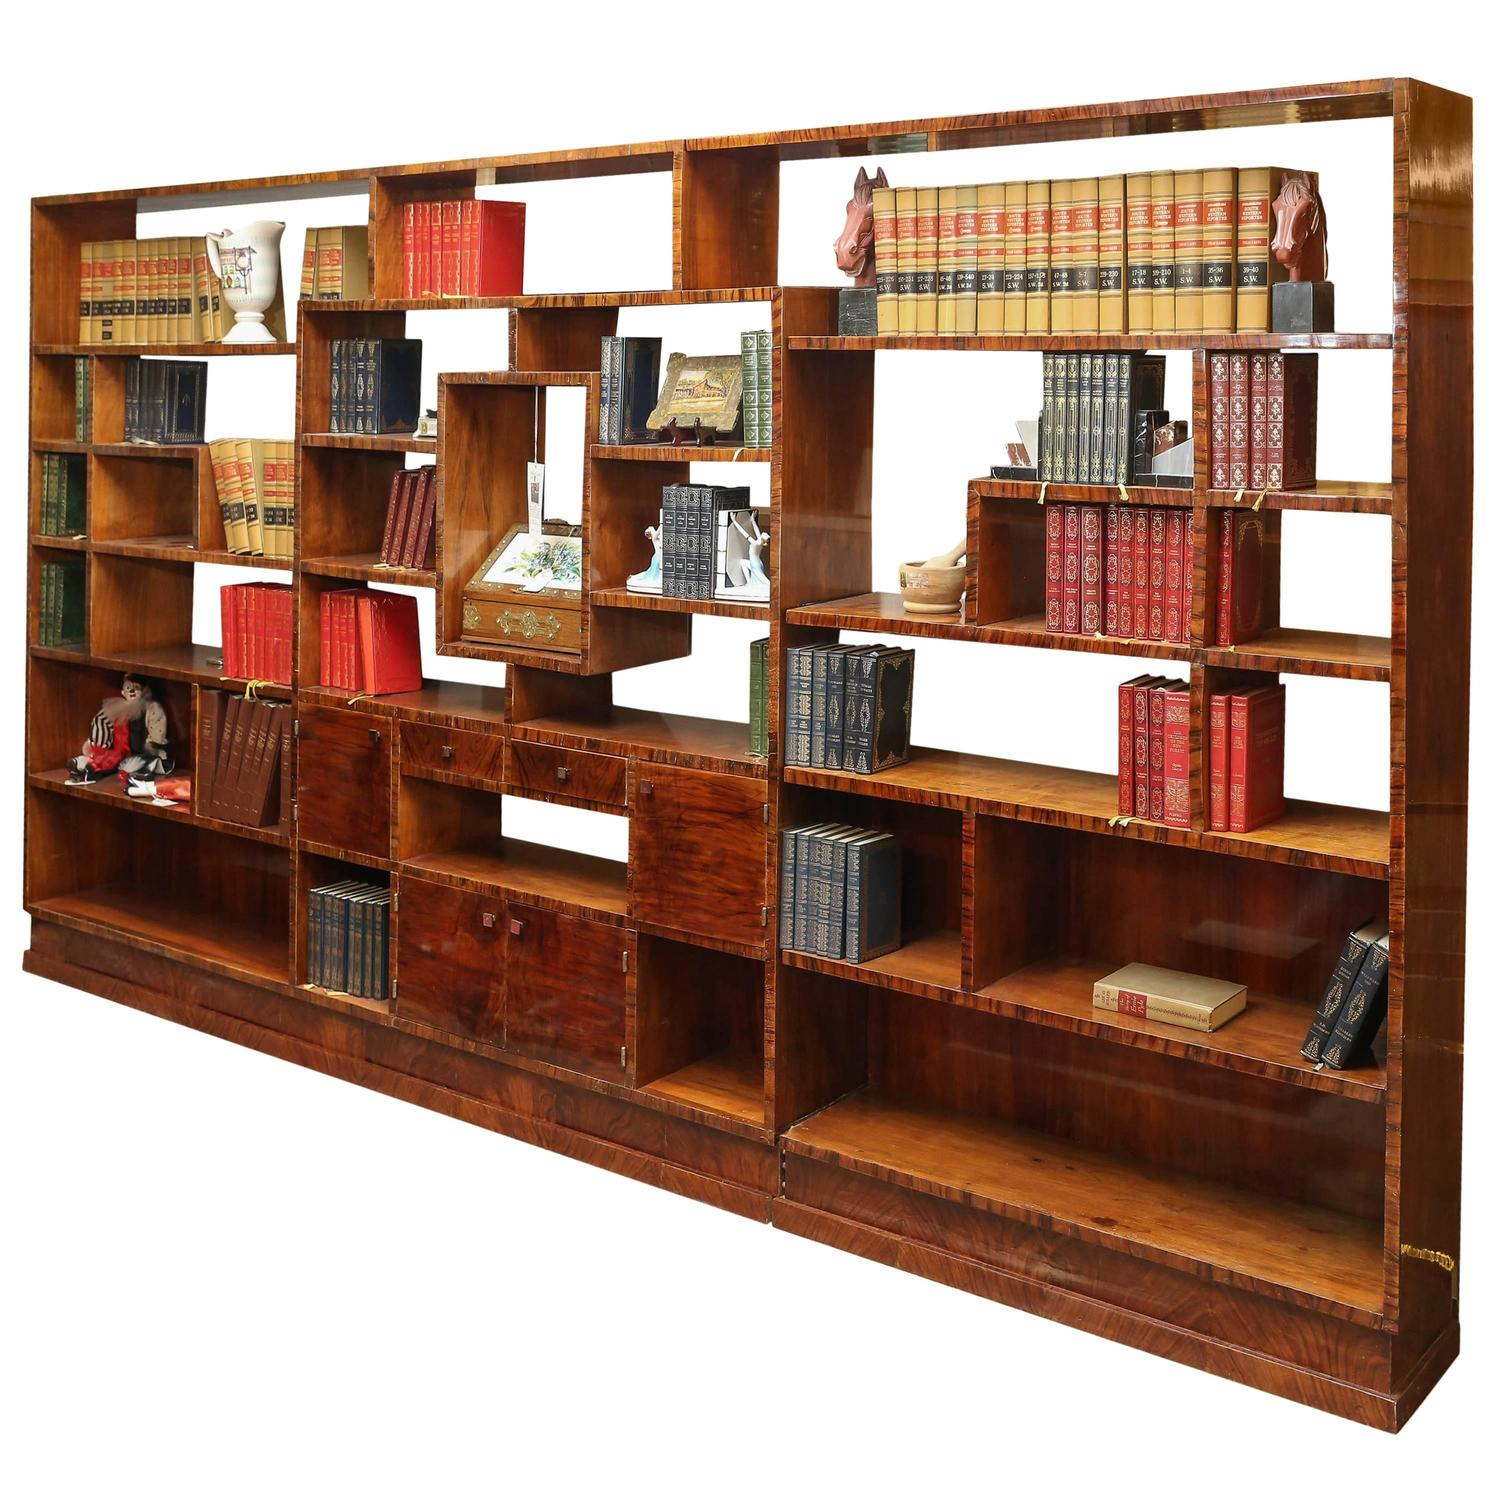 Art deco bookcase room divider at 1stdibs for Room divider art